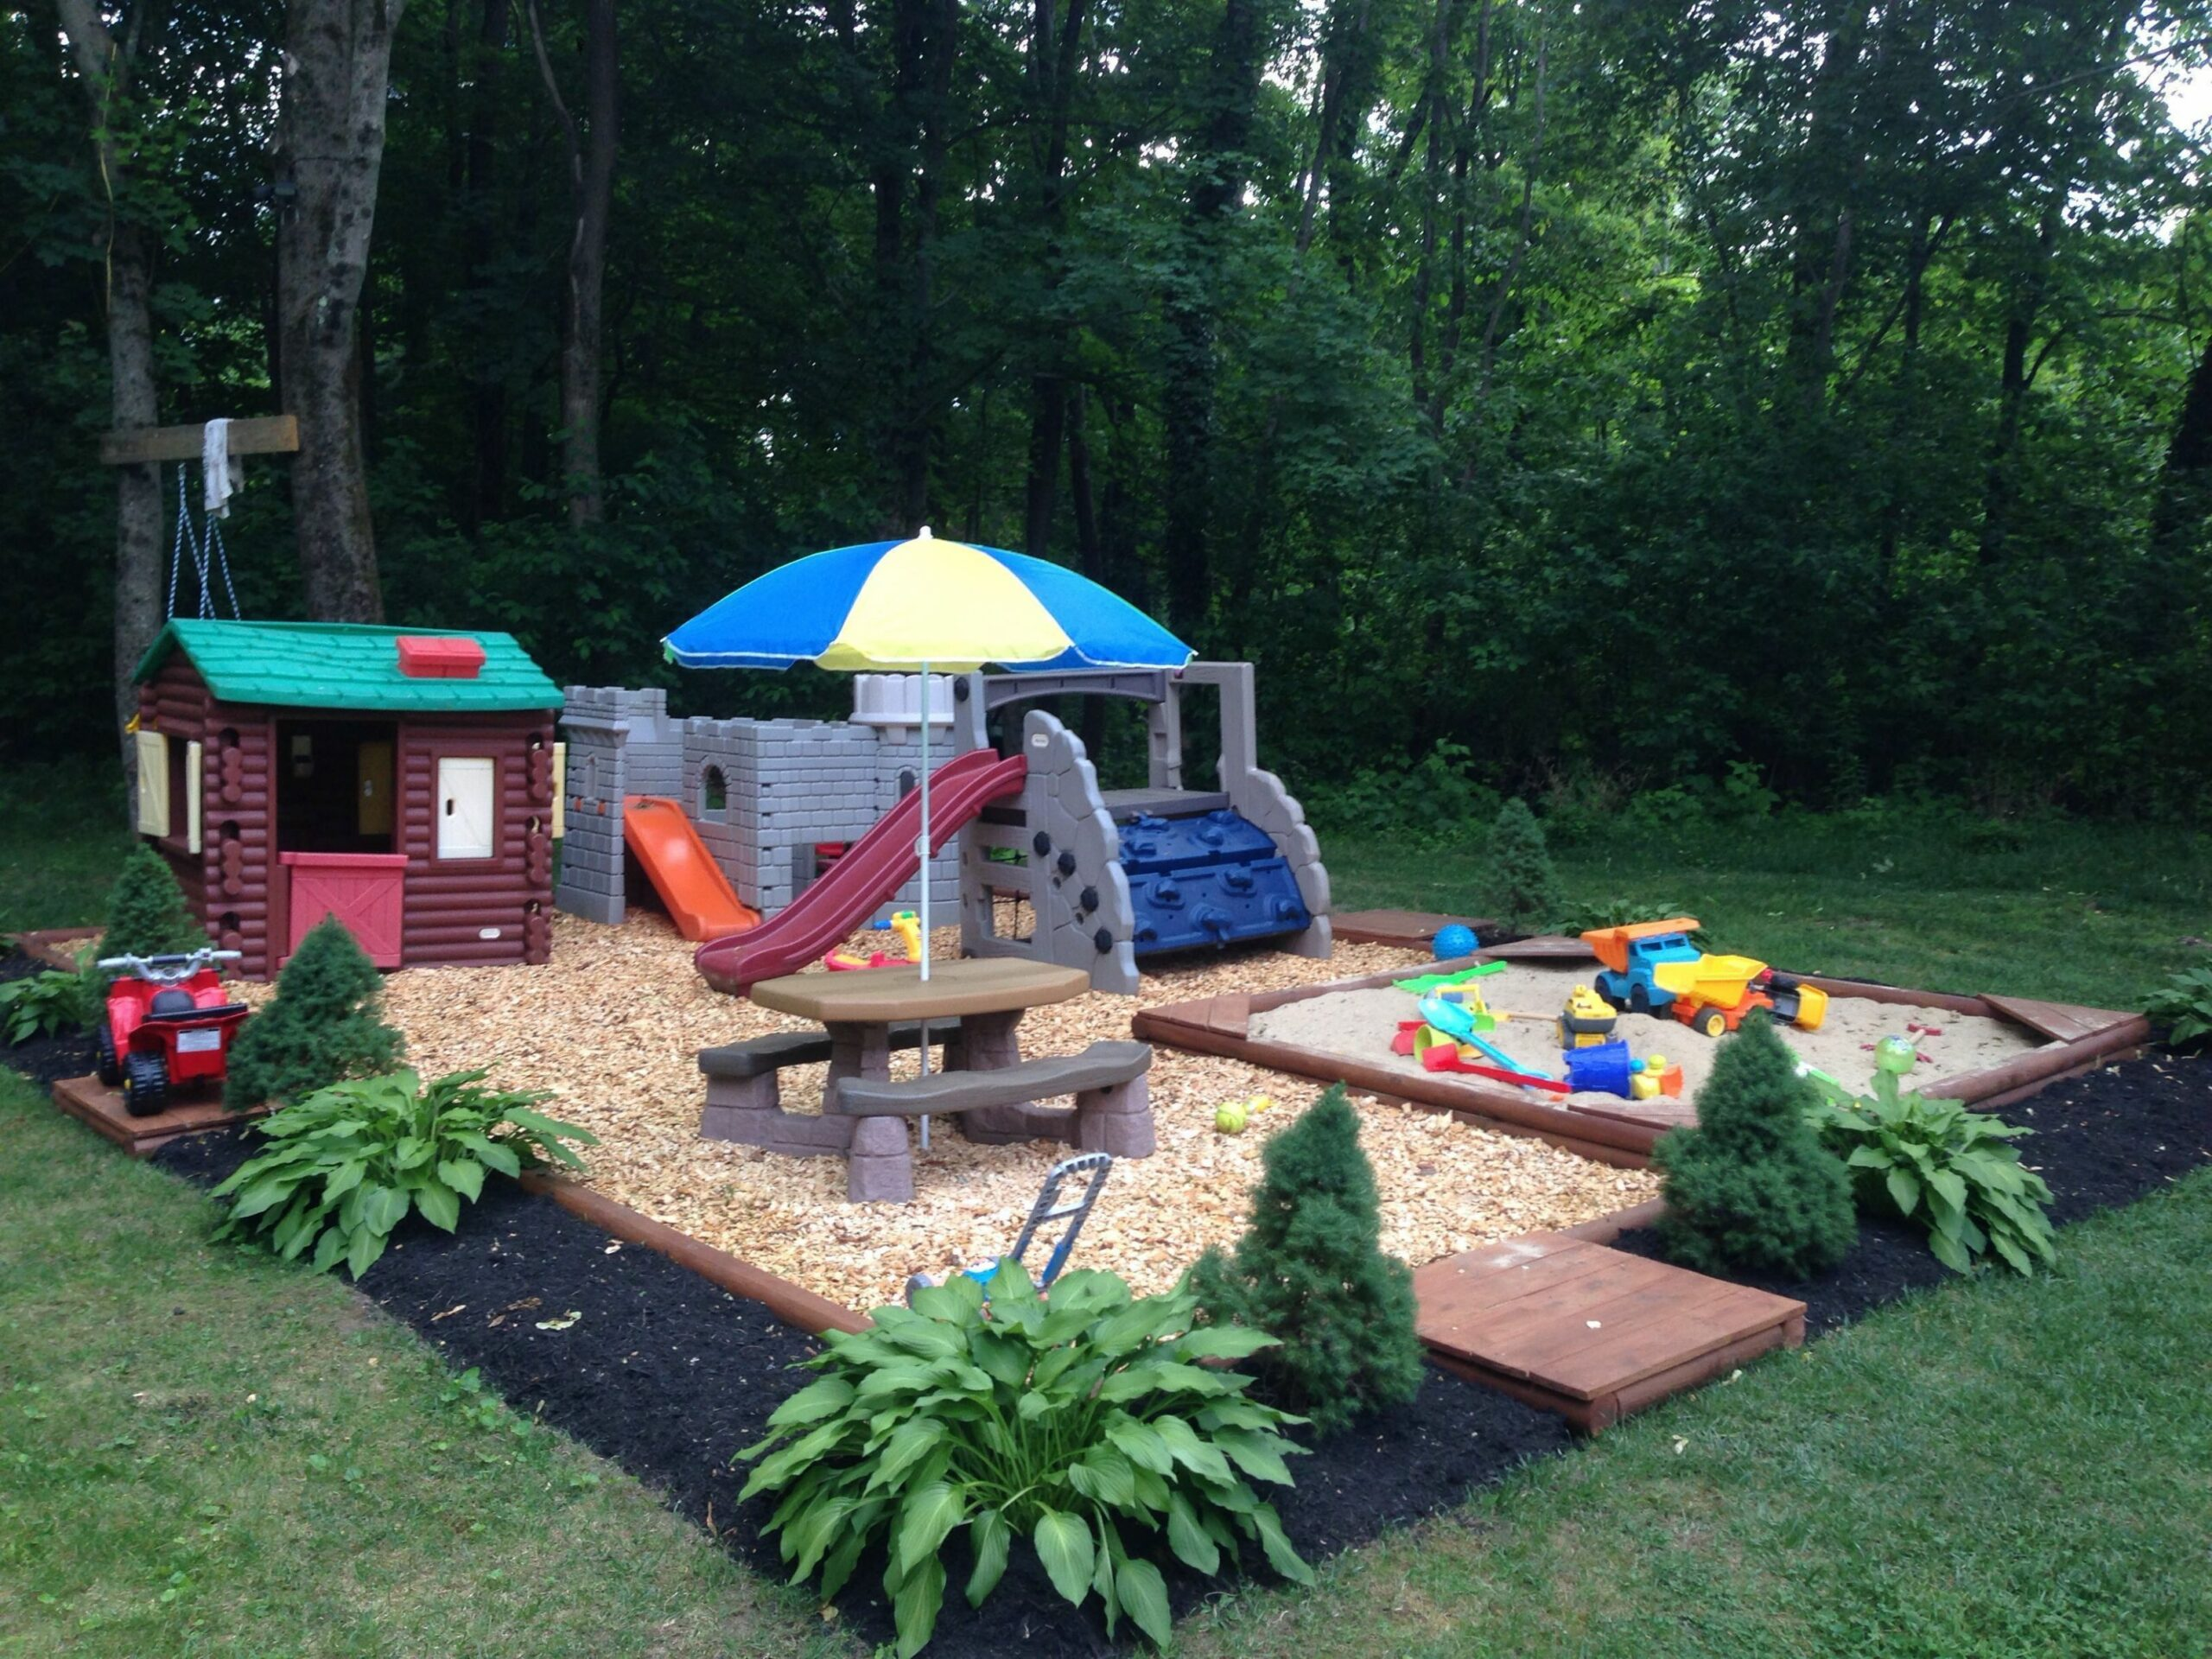 Brillian Backyard Ideas For Kids | Play area backyard, Kid ..